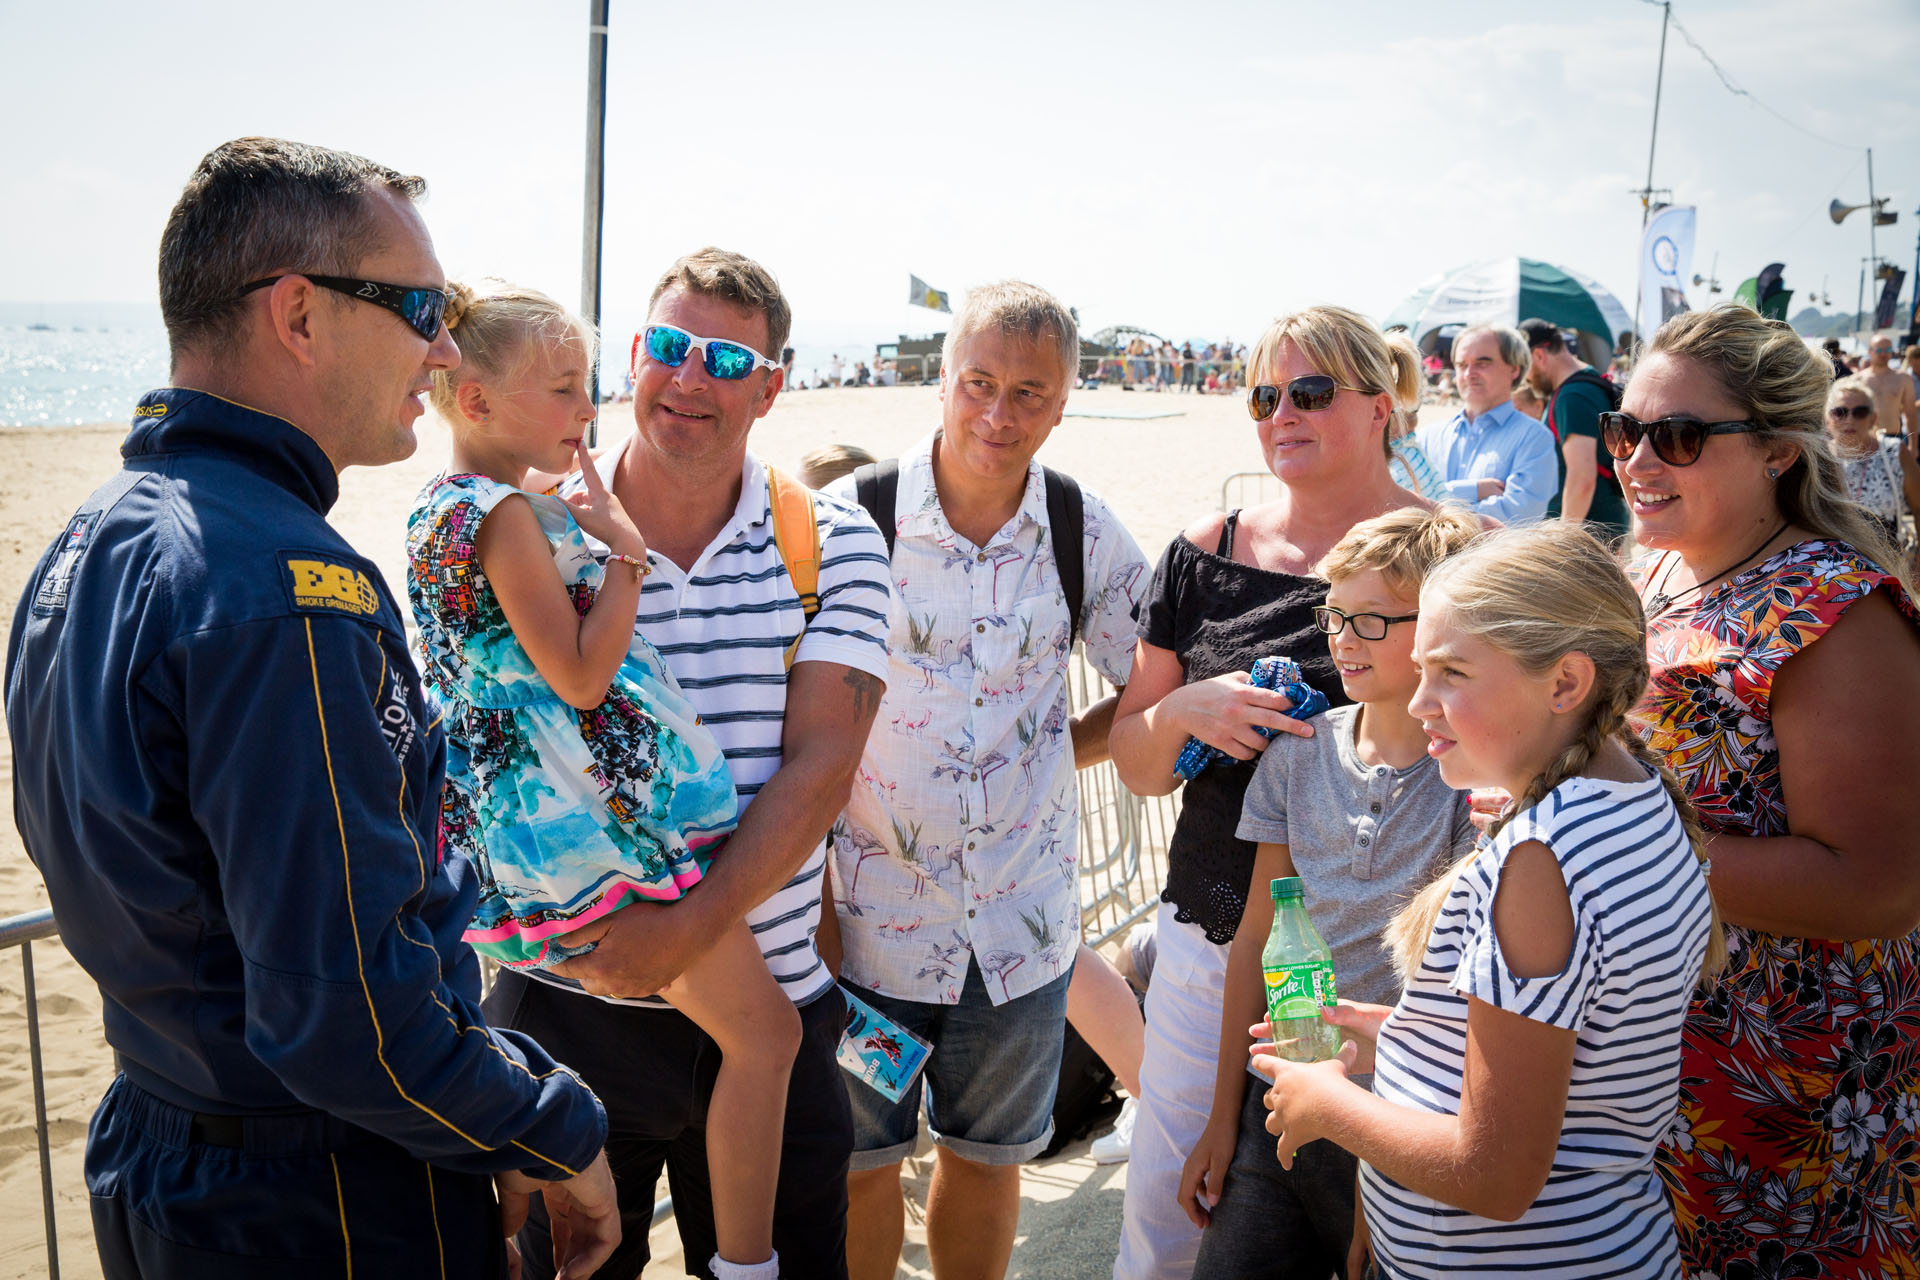 Families chatting with Pilot at the Air Festival